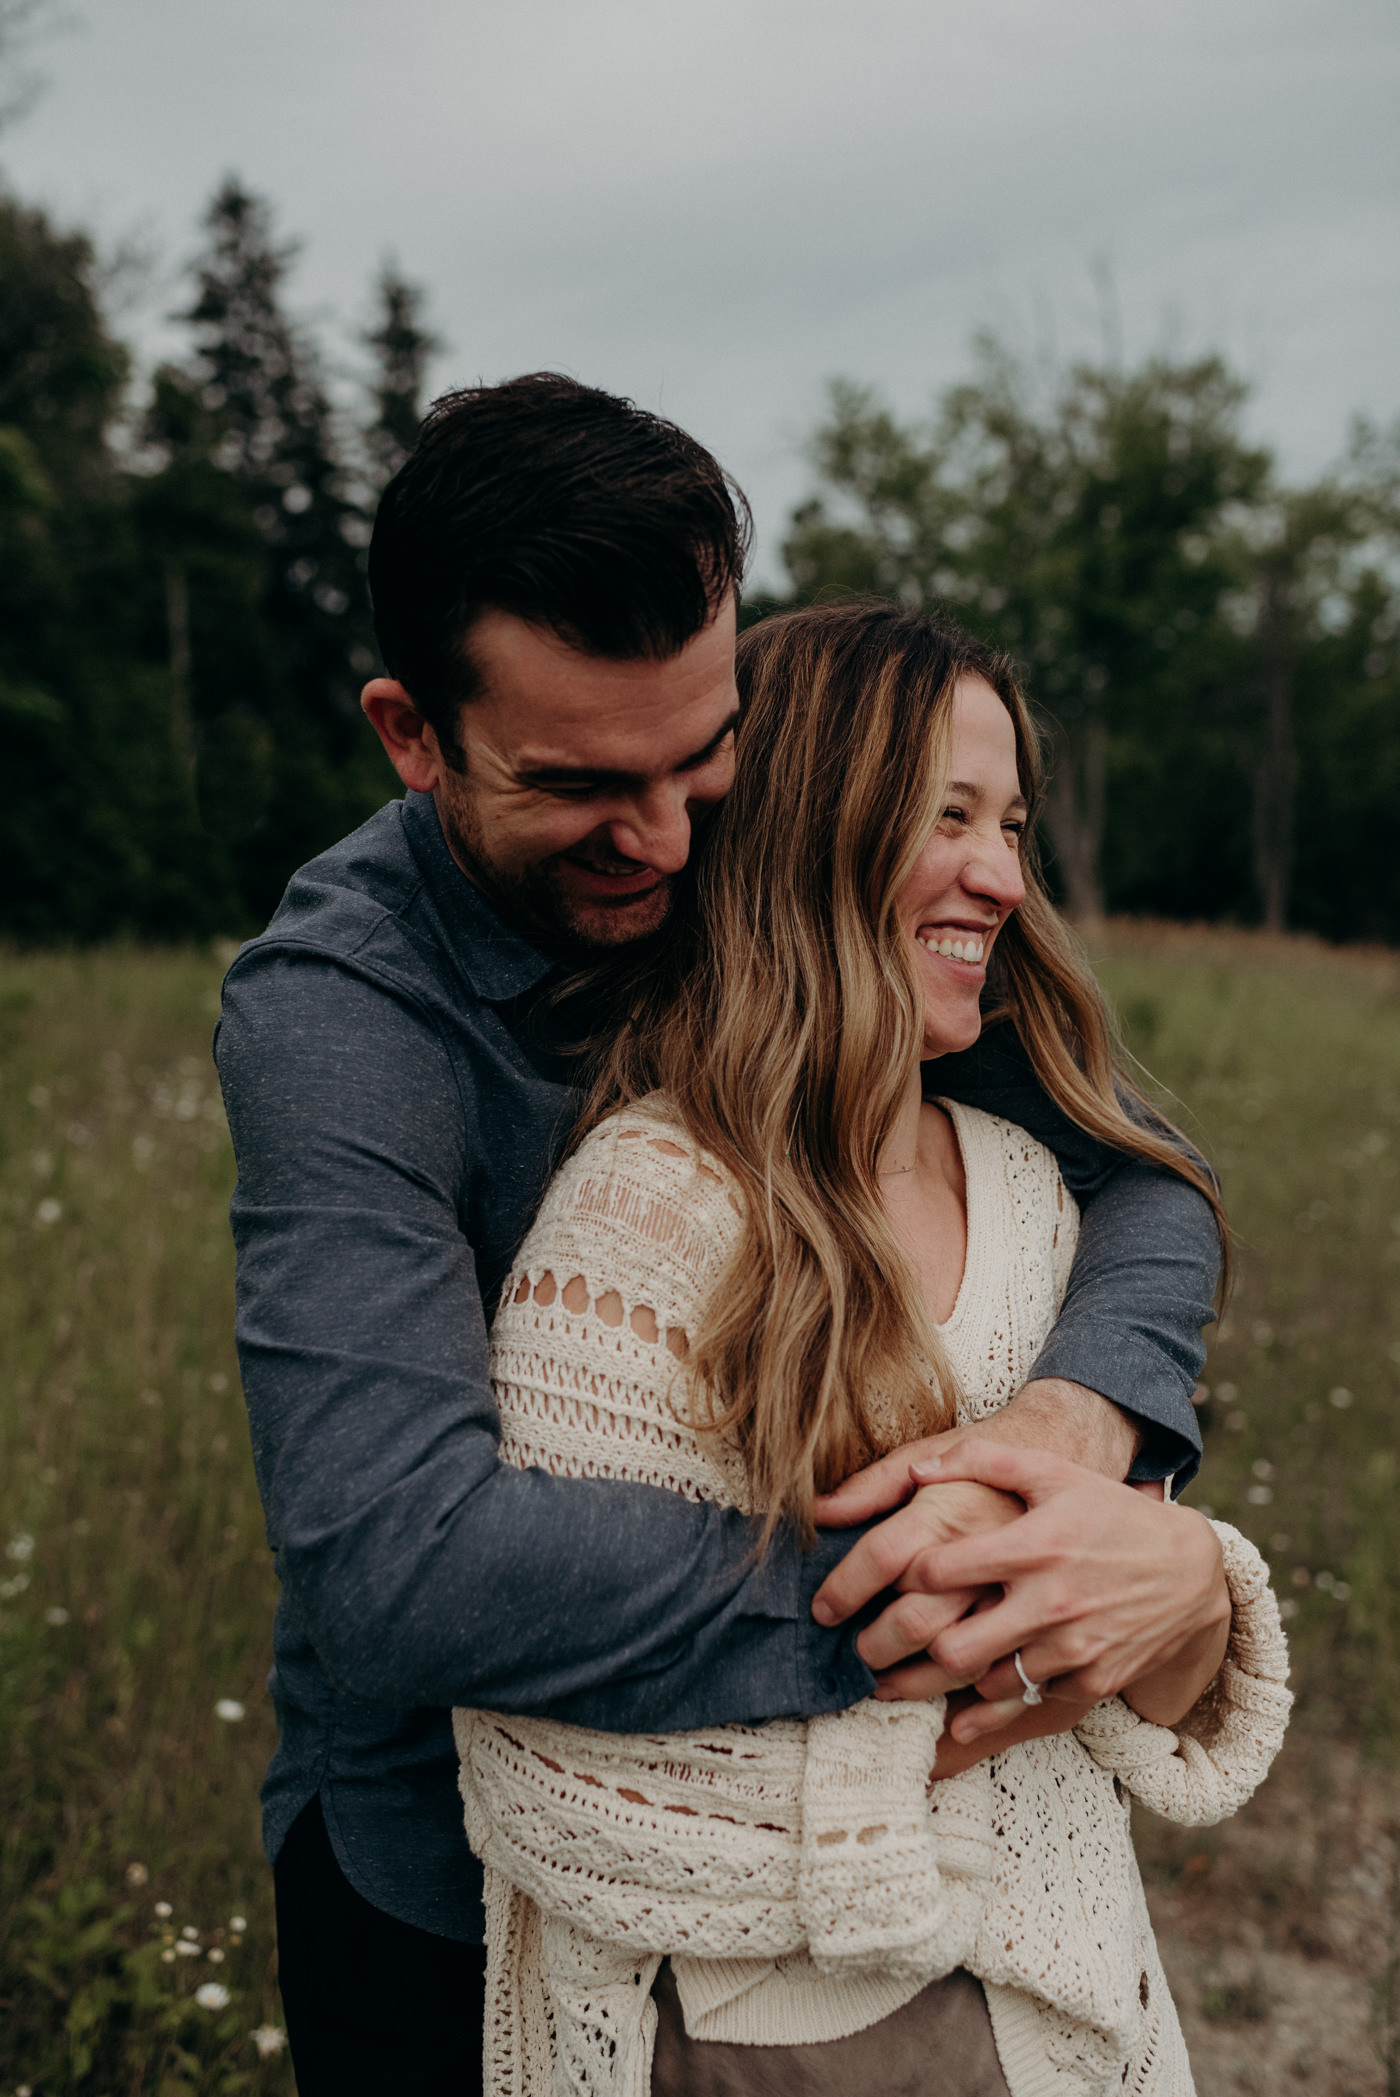 Couple hugging in field at dusk